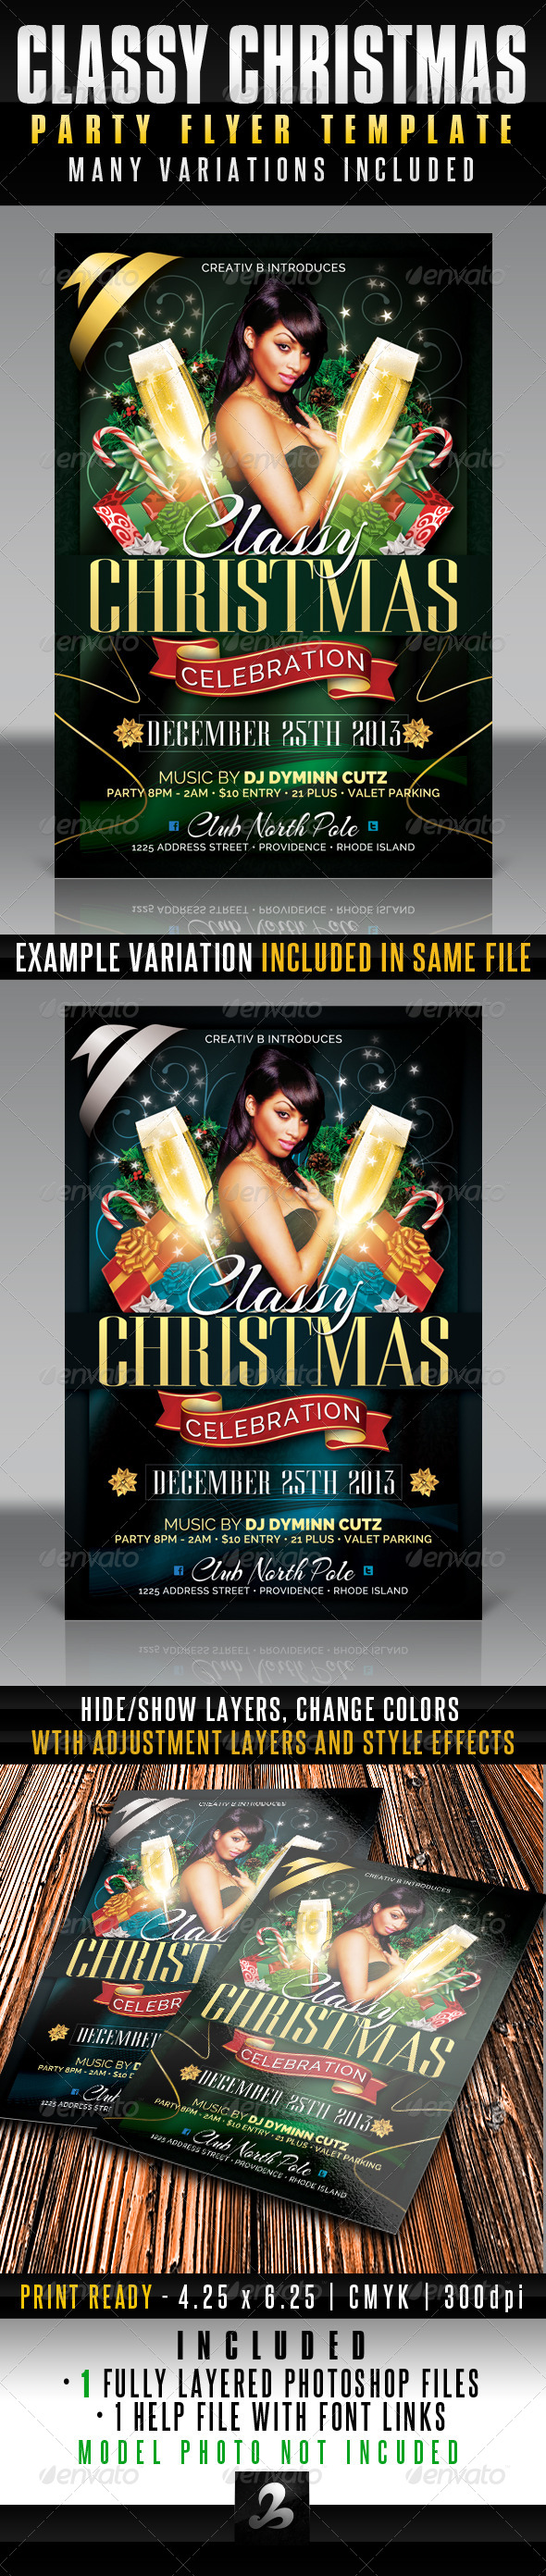 Classy Christmas Party Flyer Template - Holidays Events